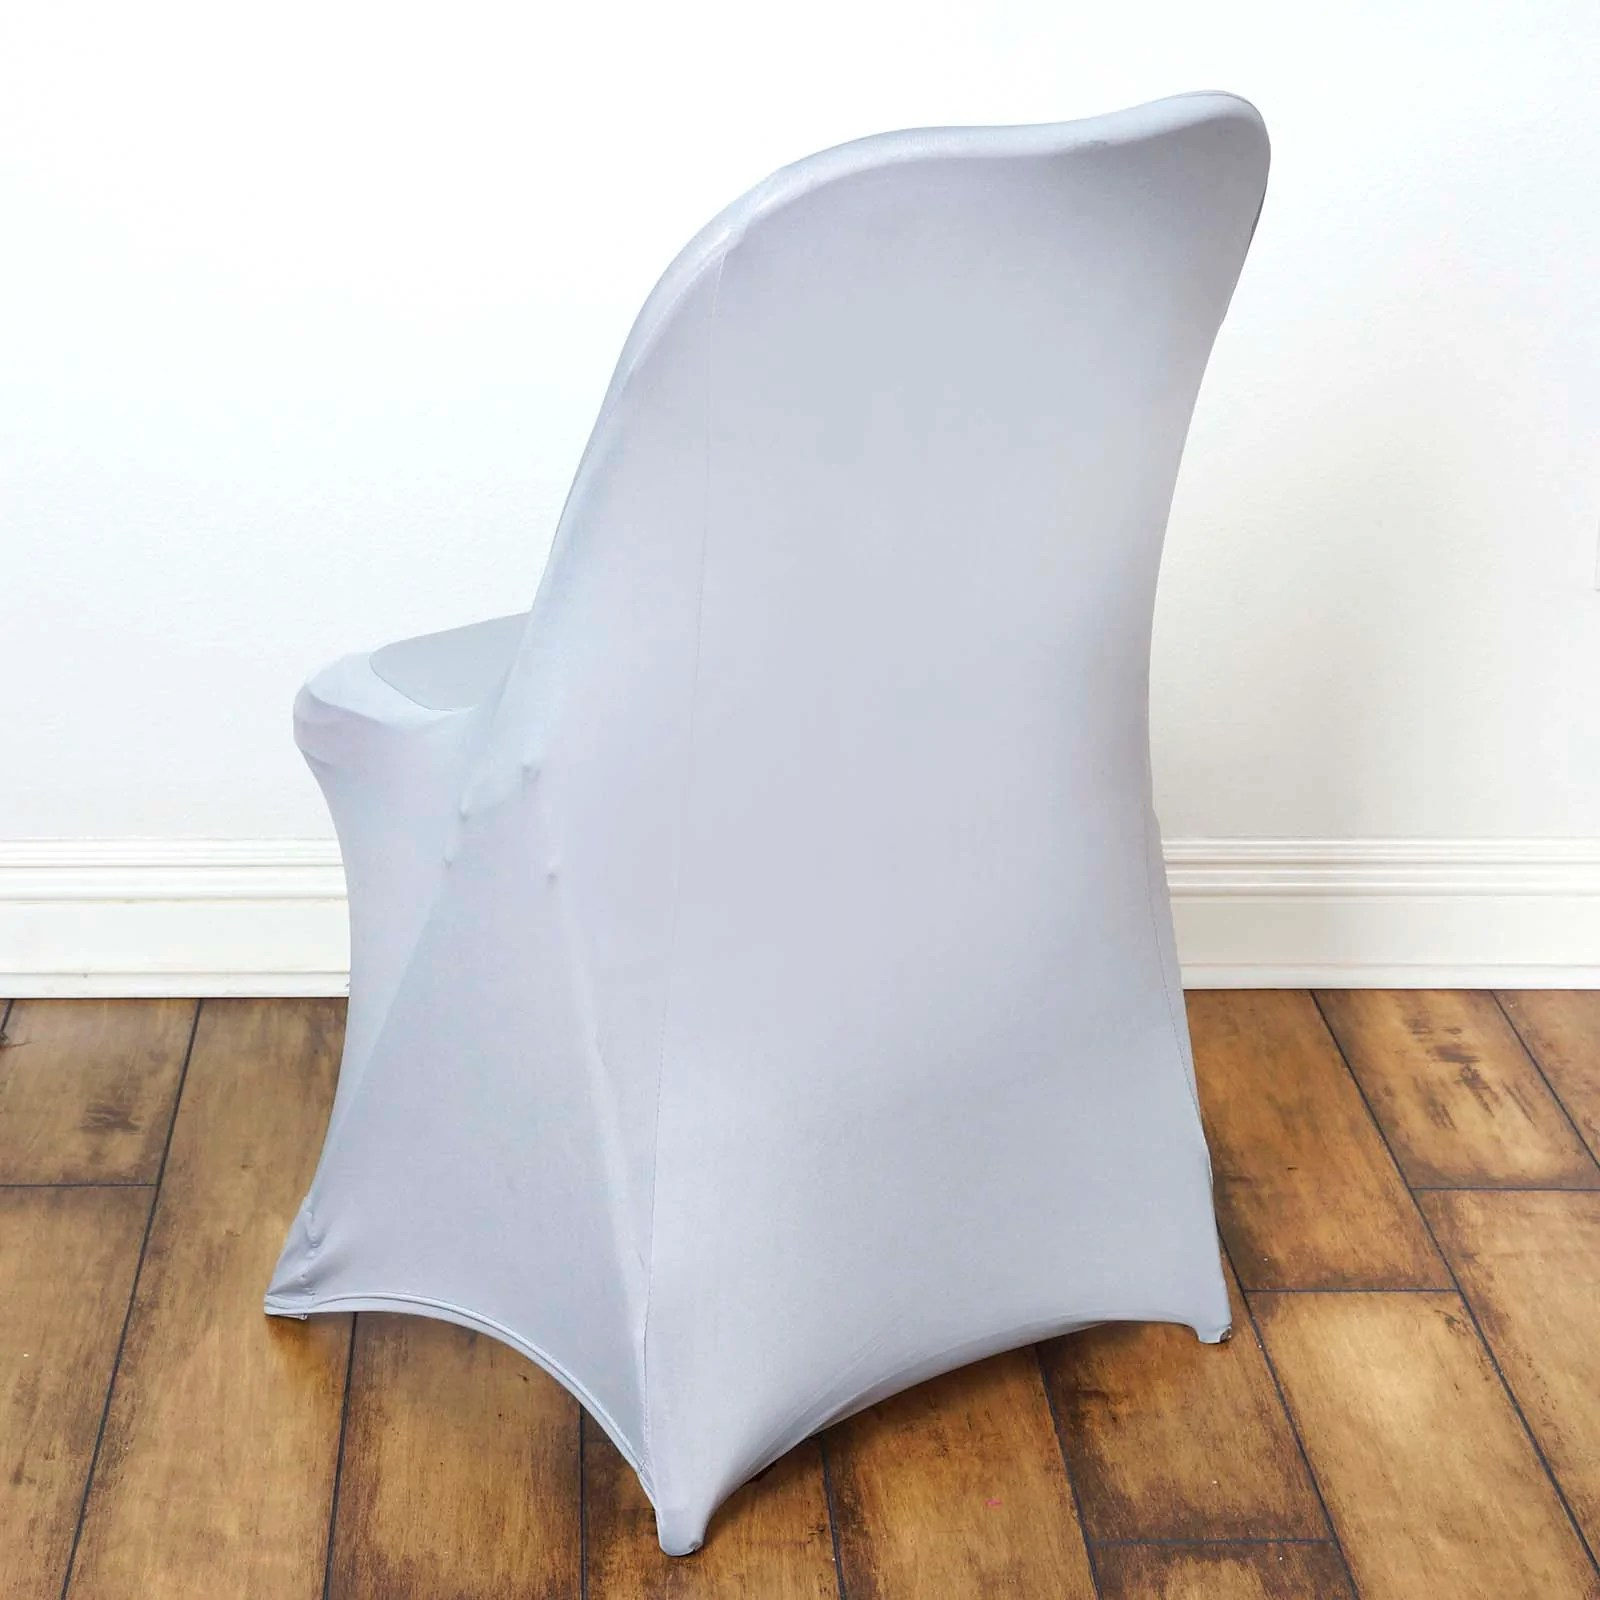 will folding chair covers fit banquet chairs cohesion xp 2 1 gaming silver spandex stretch cover tablecloths factory for